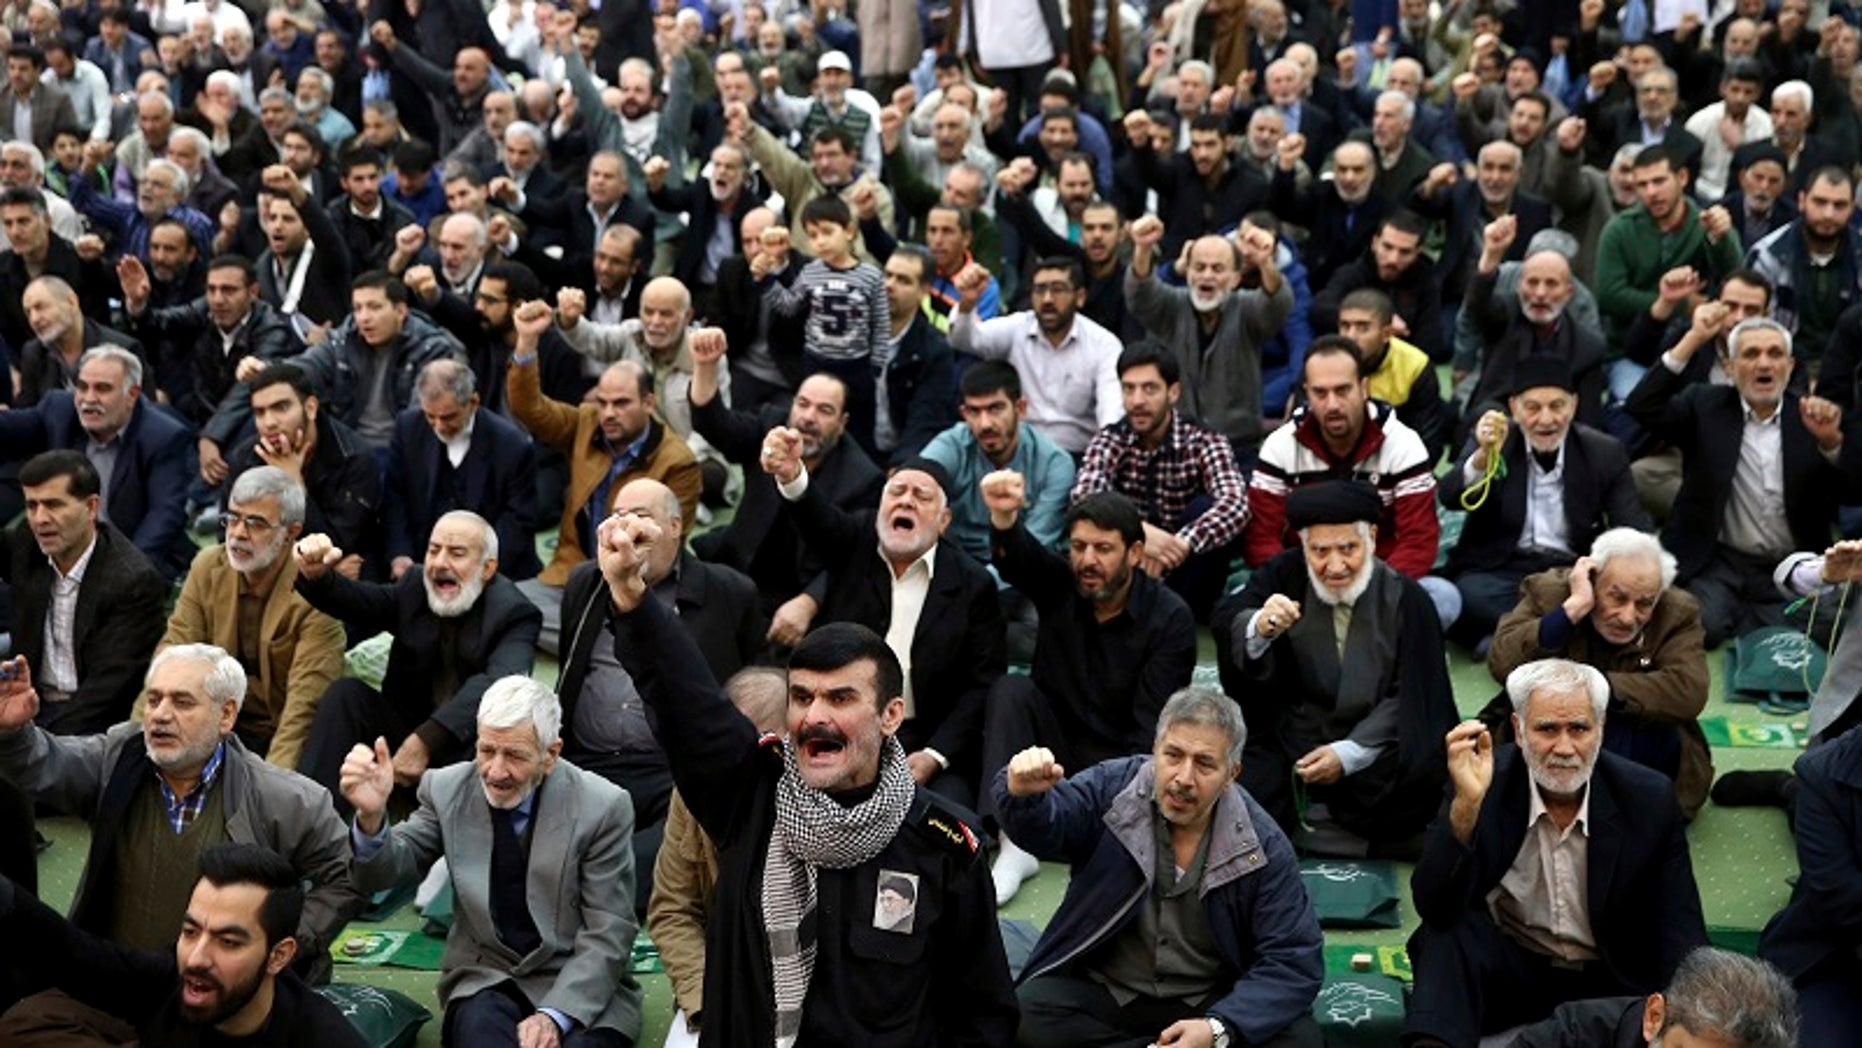 The German government is being urged to abandon its support of Iran's mullah regimes as Iranians protest against the regime.